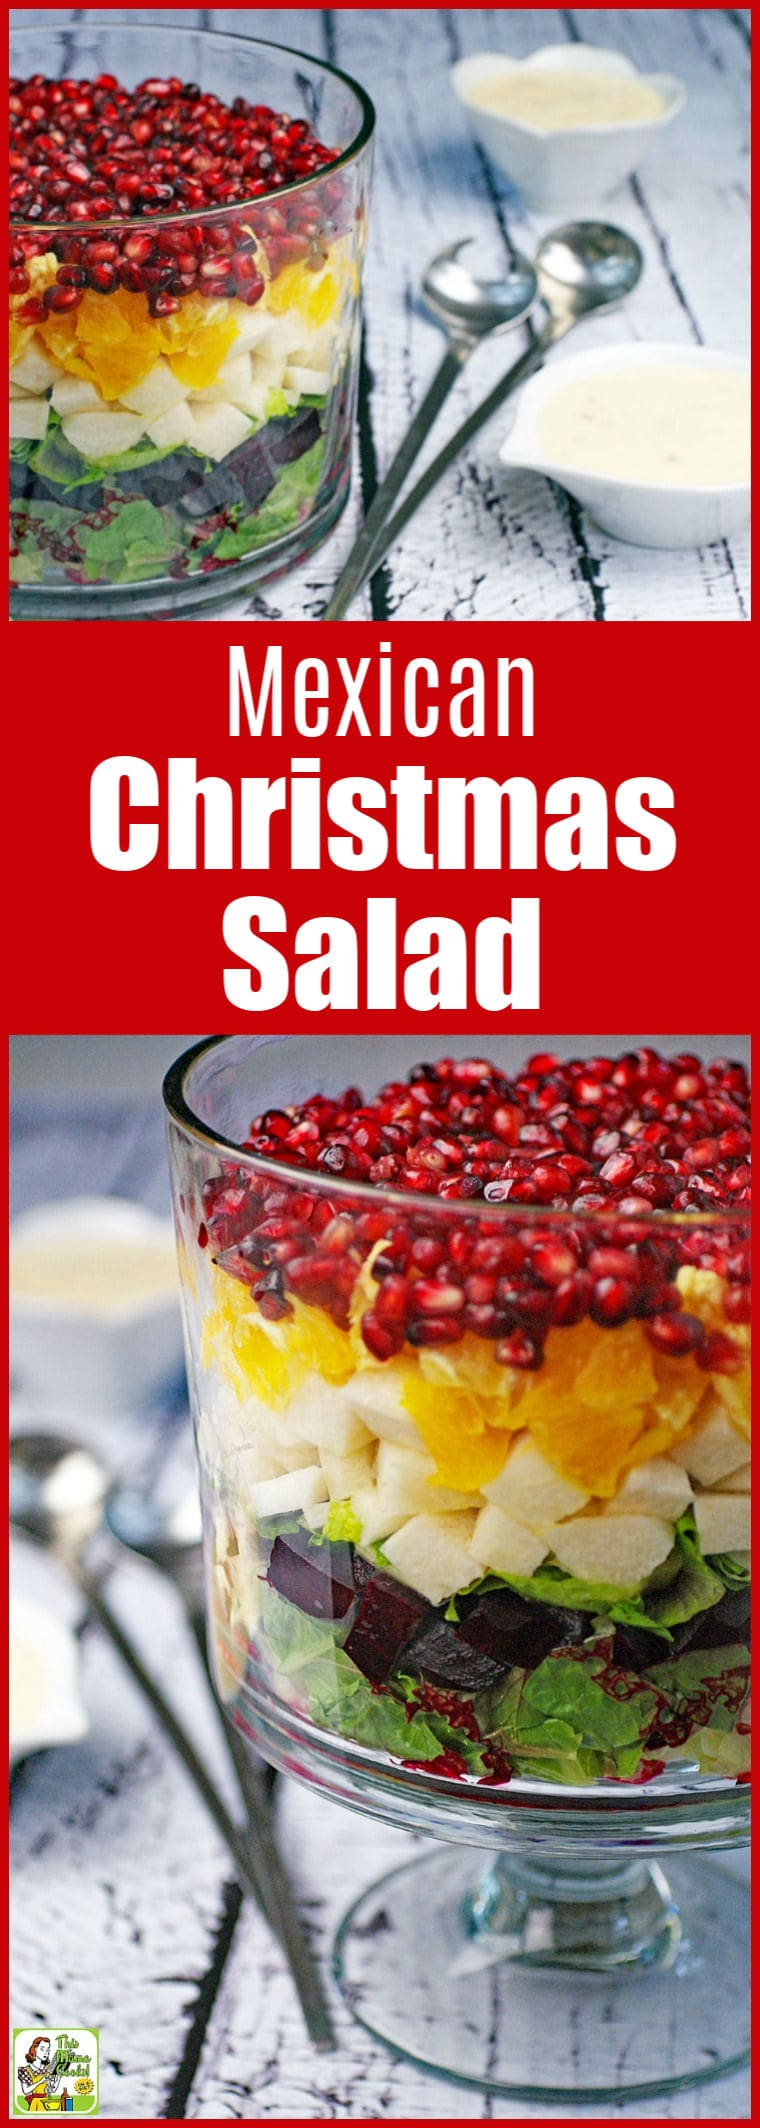 Mexican Christmas Salad Recipe